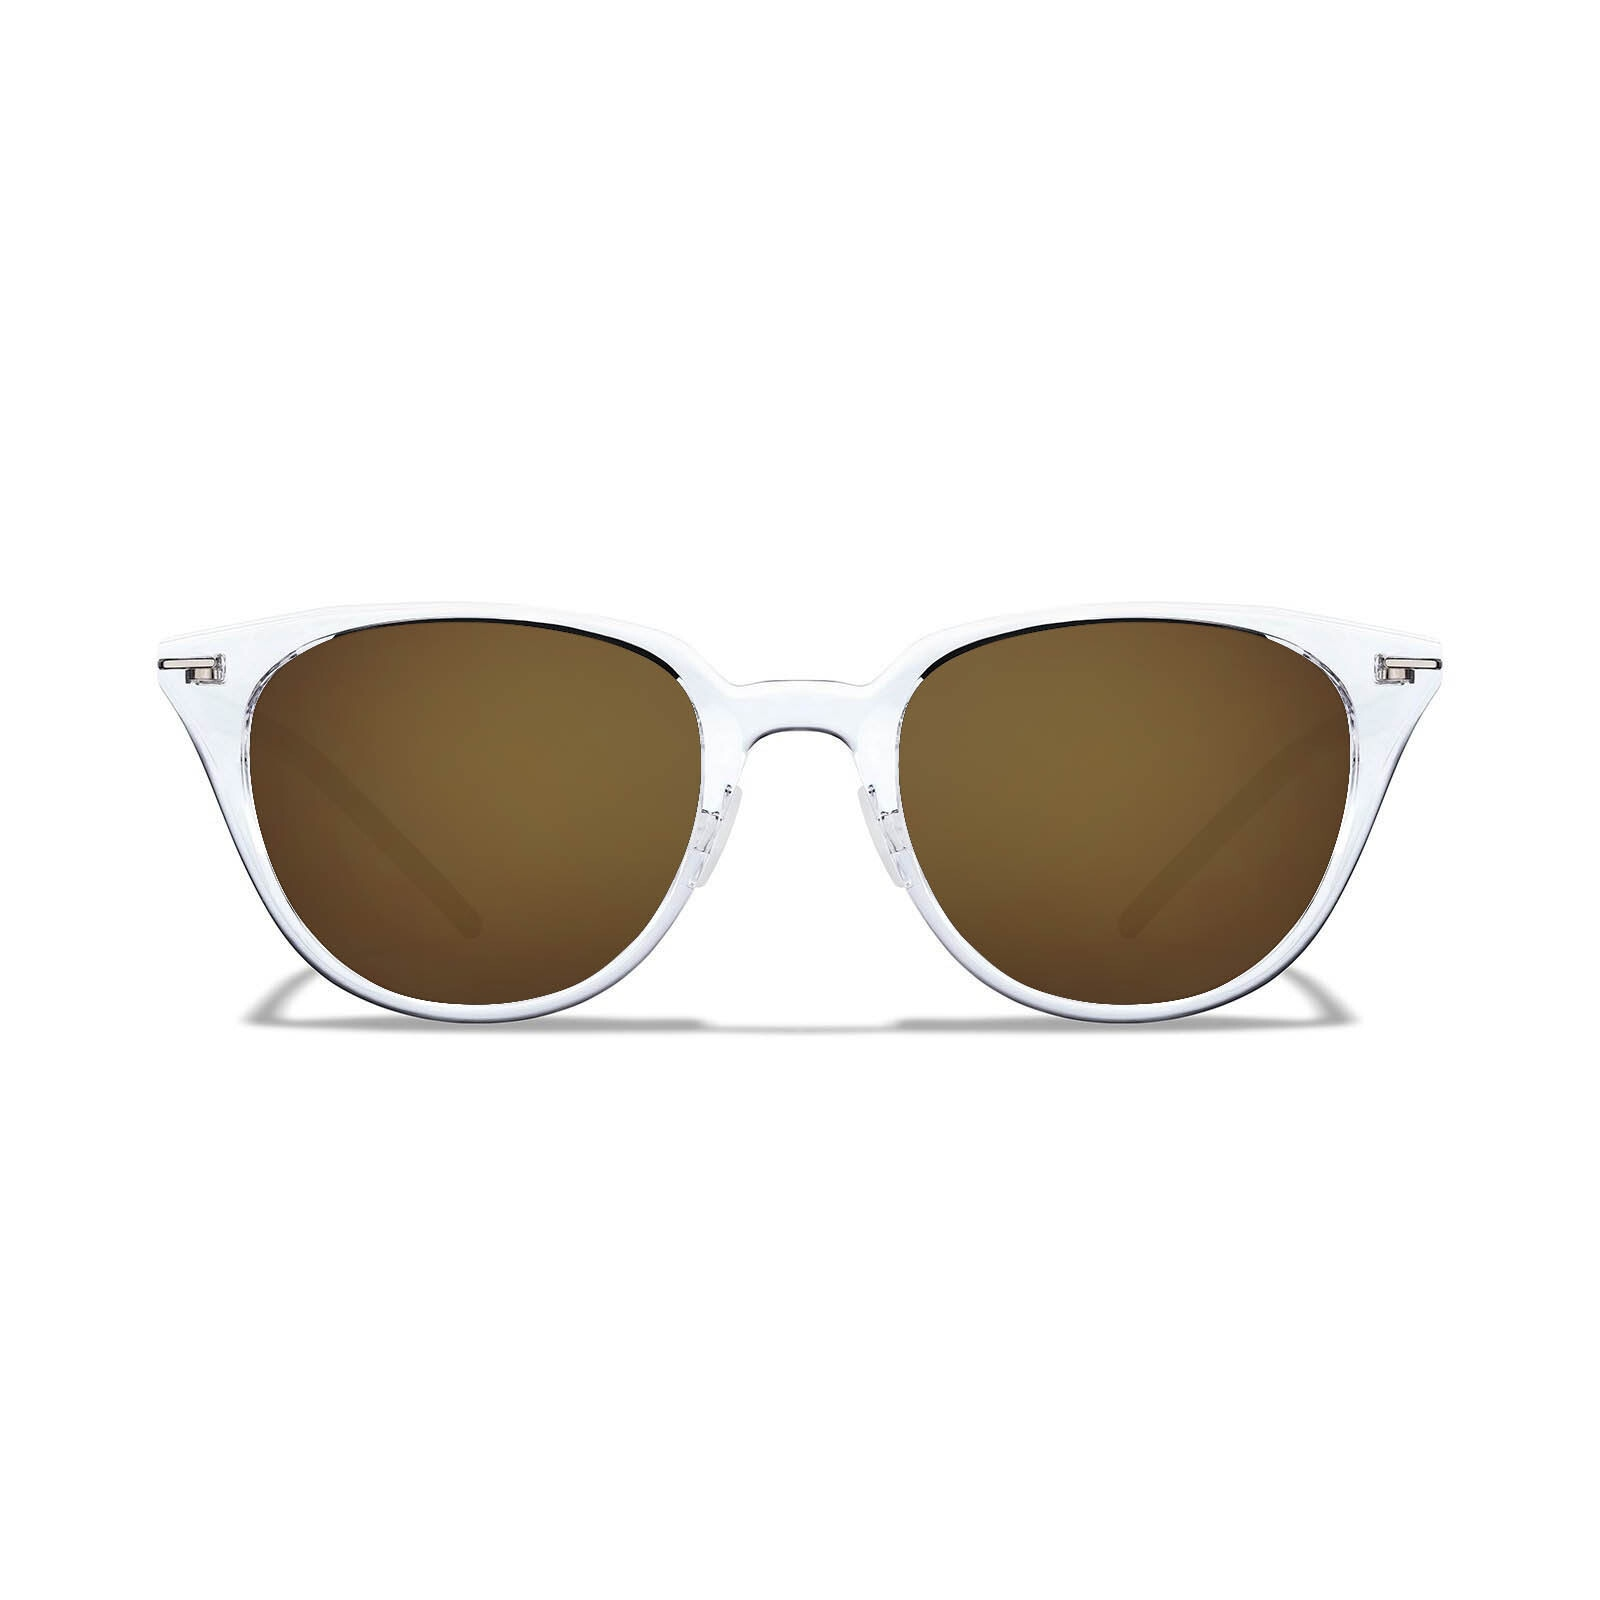 Lola Frame with Bronze Lens